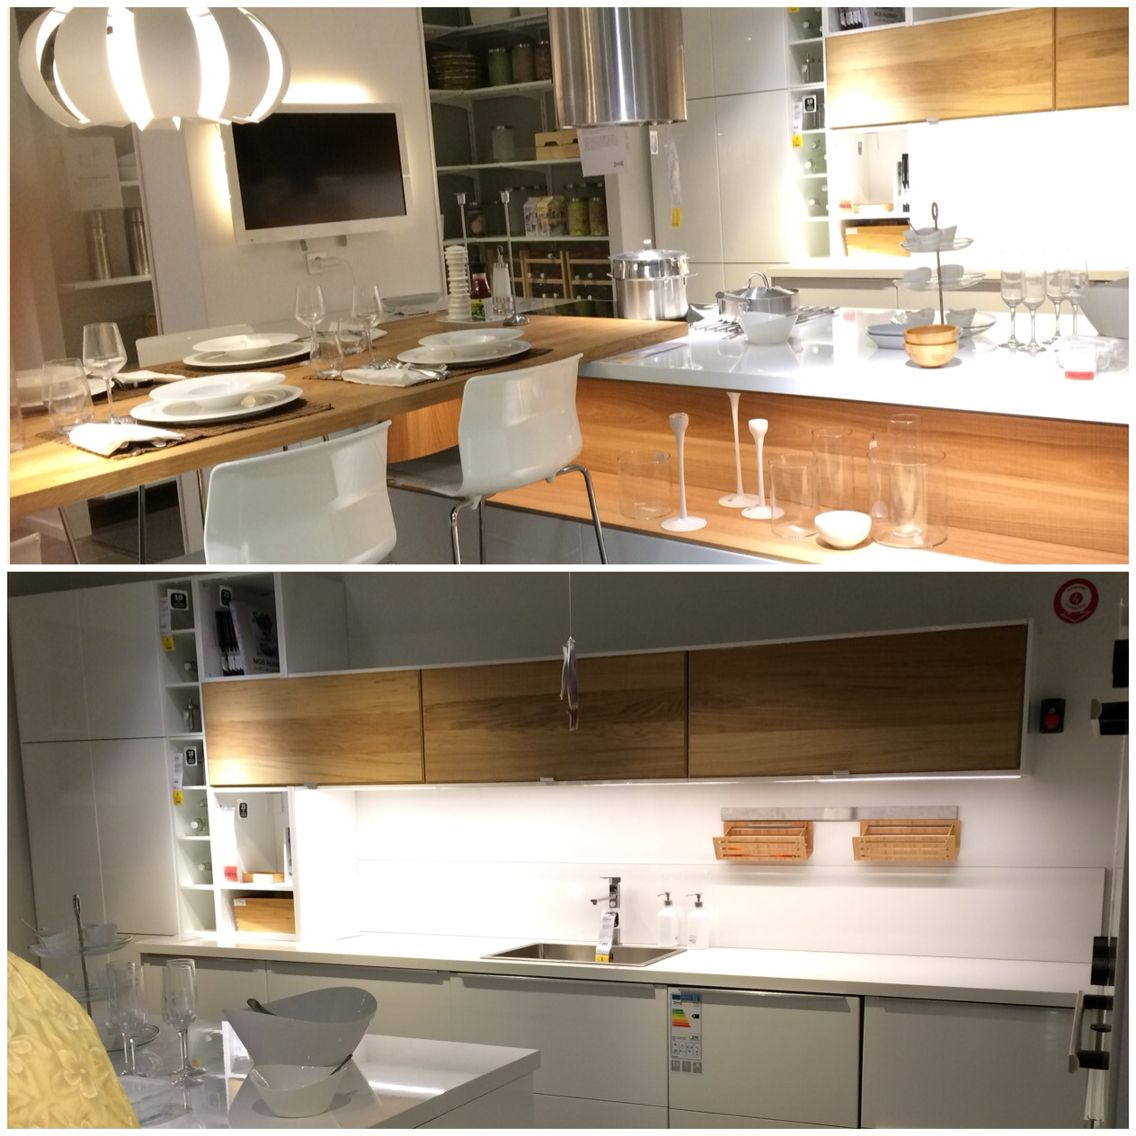 cuisine ikea ekestad ringhult kitchen pinterest kitchens small spaces and mid century. Black Bedroom Furniture Sets. Home Design Ideas